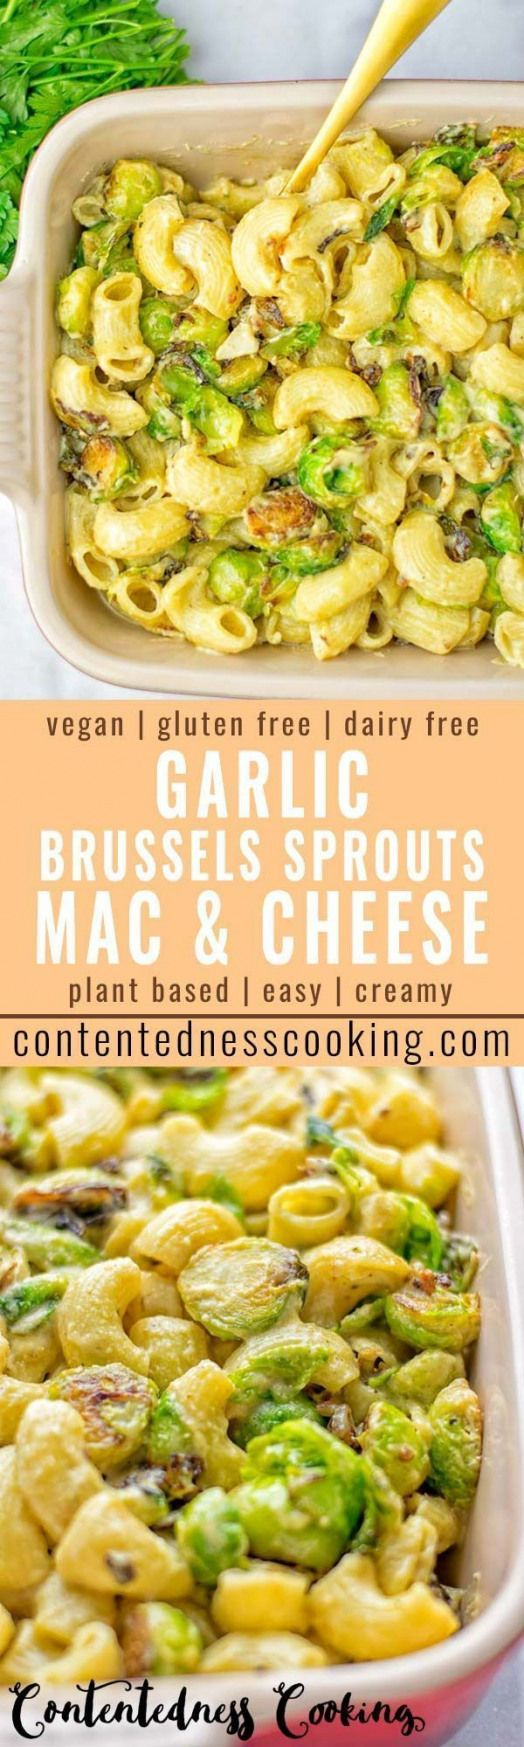 This Garlic Brussels Sprouts Mac and Cheese is entirely vegan gluten free and super easy to make. Its an amazing comfort food for dinner lunch meal prep work lunches date nights and of course the holidays. Everyone will get addicted to this from the first to the last bite try it now!